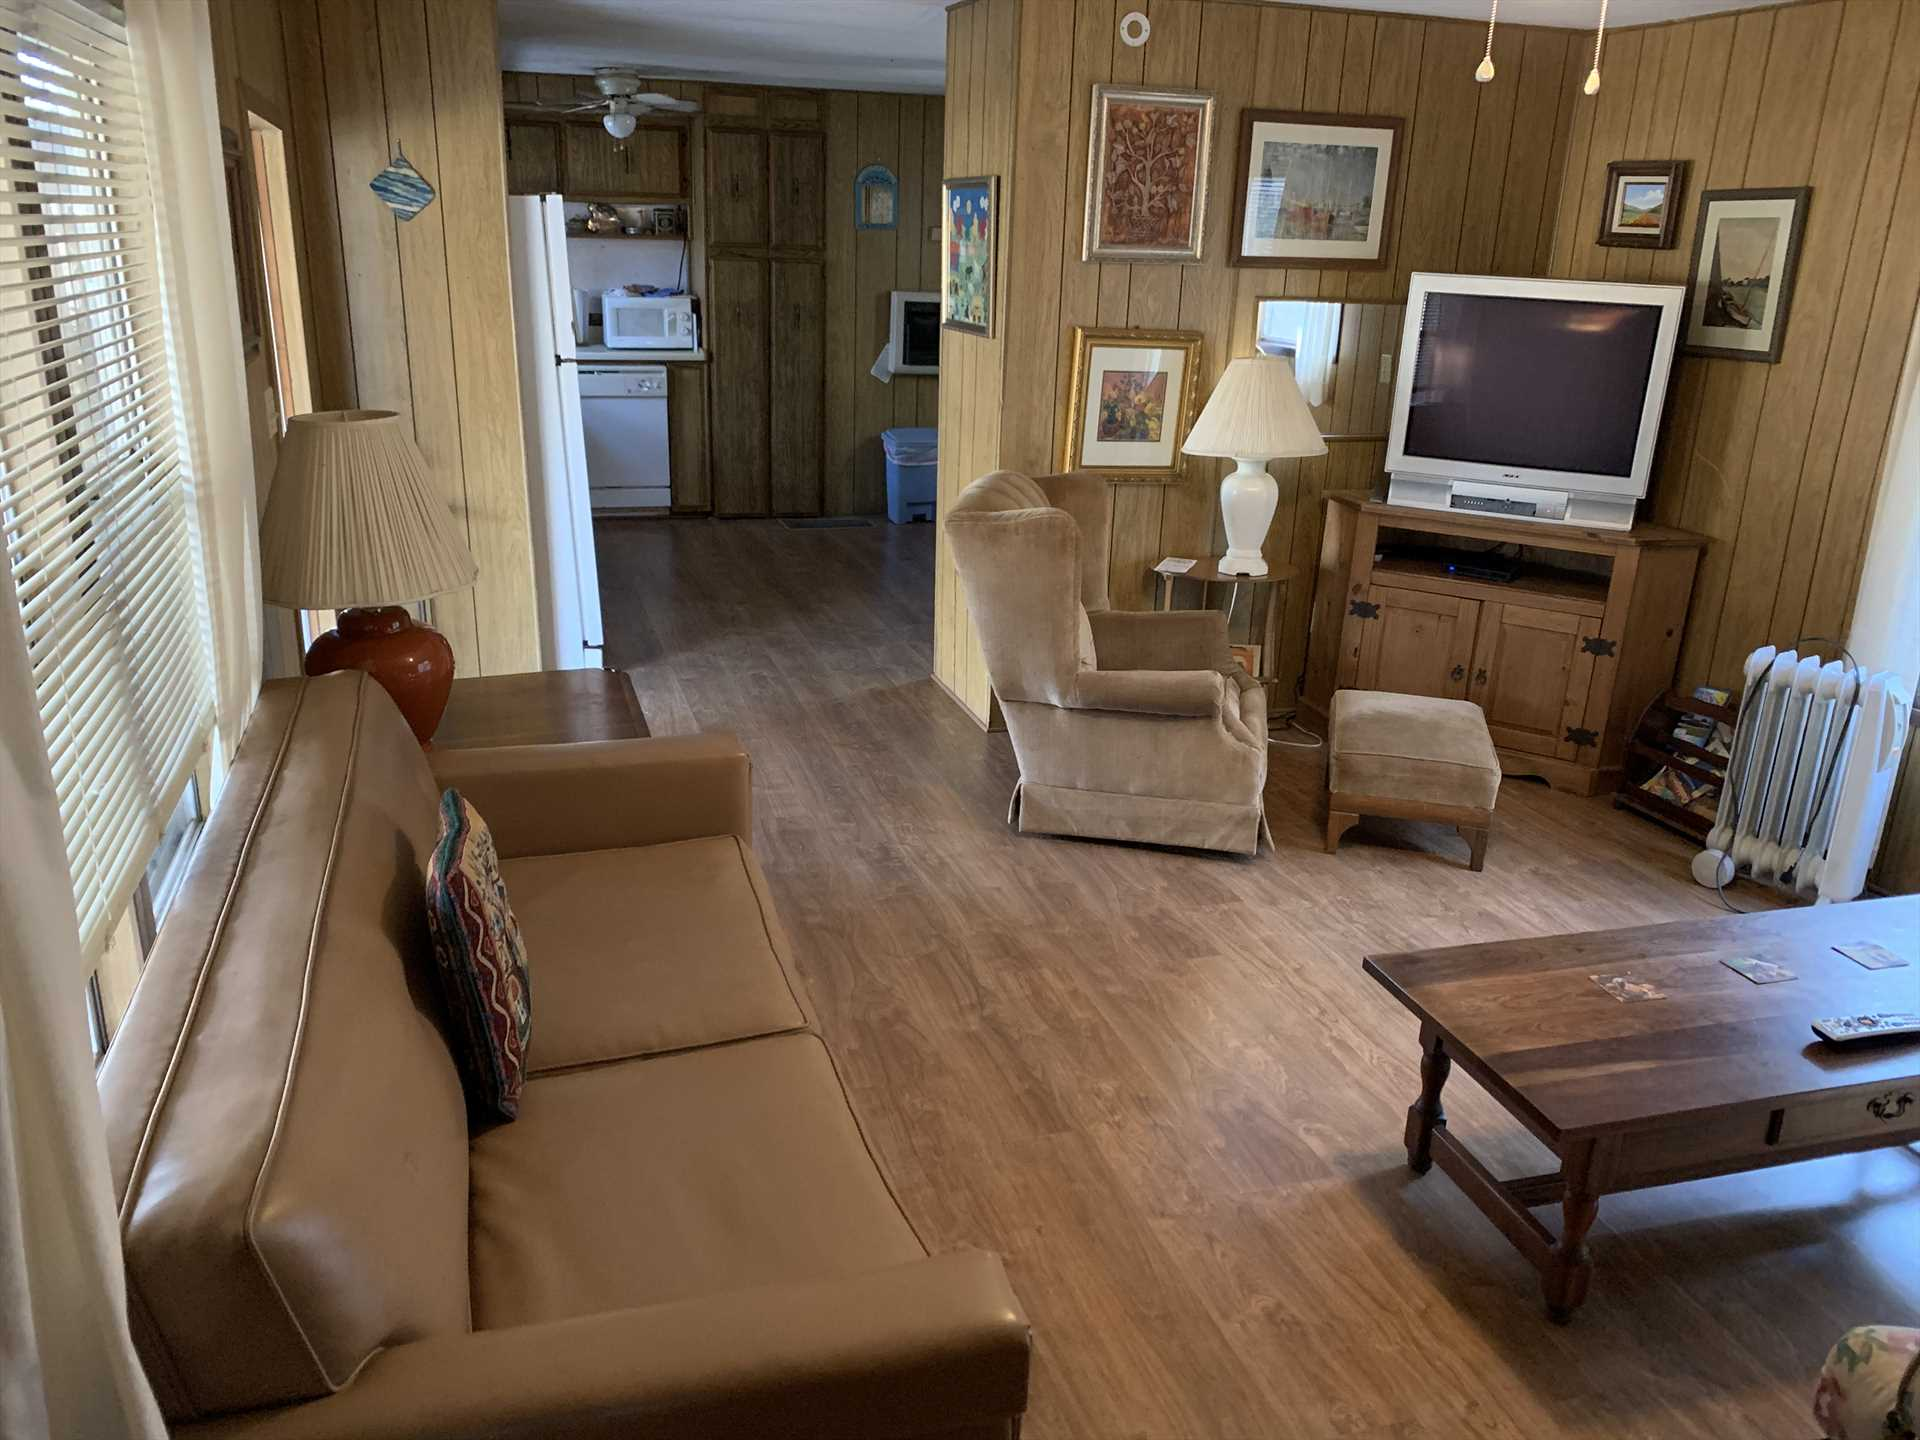 Woodwork and matching furnishings in Mobile 1 combine with natural light to create a welcoming atmosphere for our visitors.